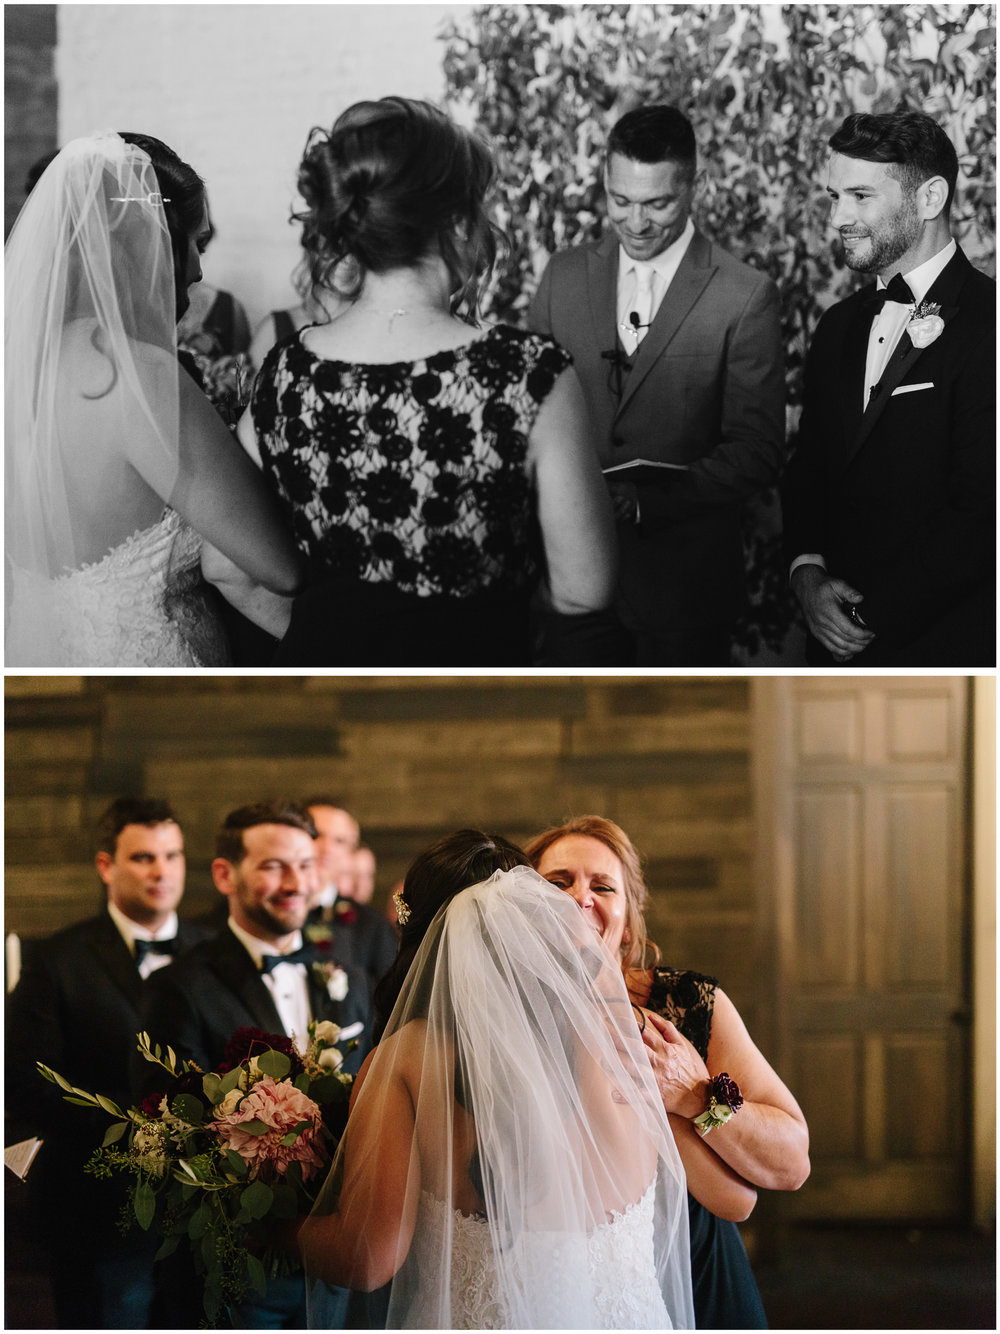 moss_denver_wedding_49.jpg